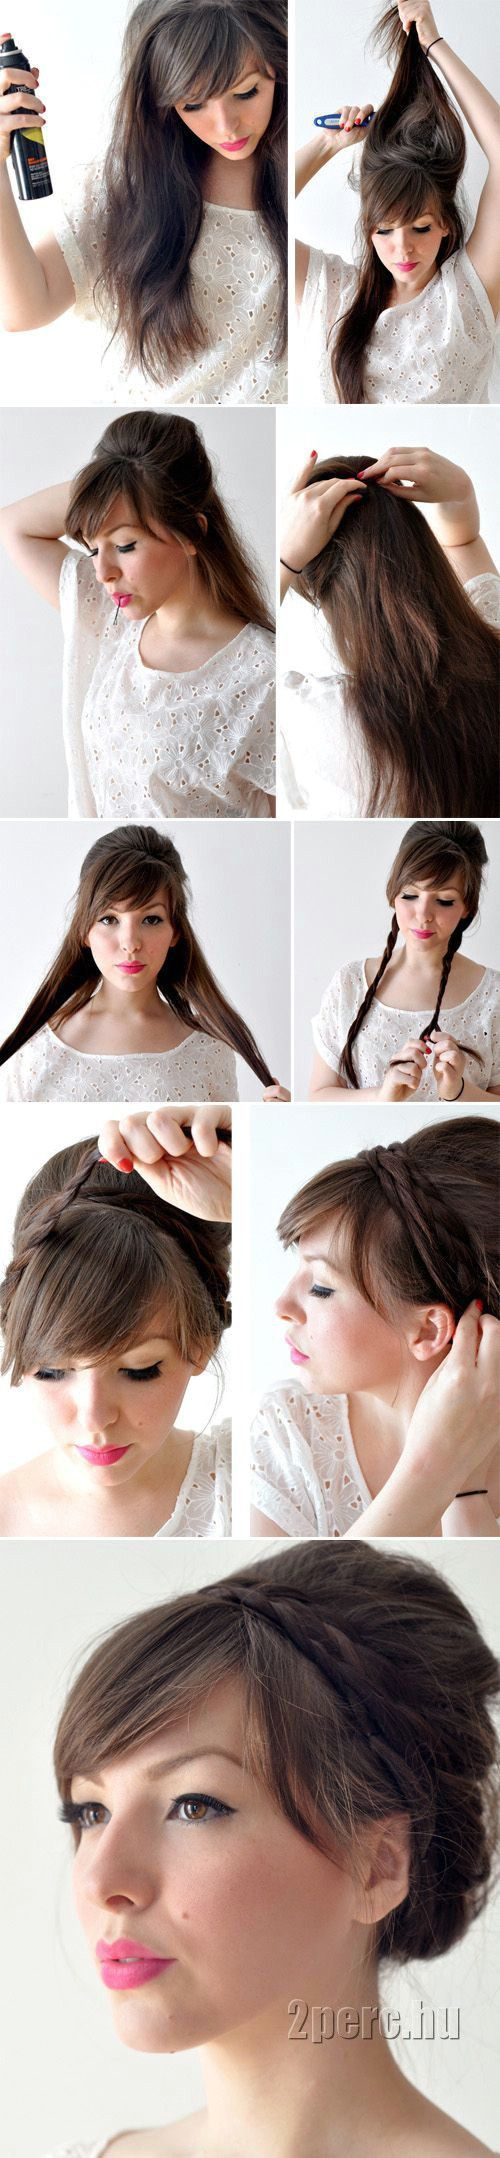 diy hair idea braided updo - @Becky Hui Chan Gilbert i like this for me for ya wedding! what do you think? {i may not even be able to do it cause my hair is short}